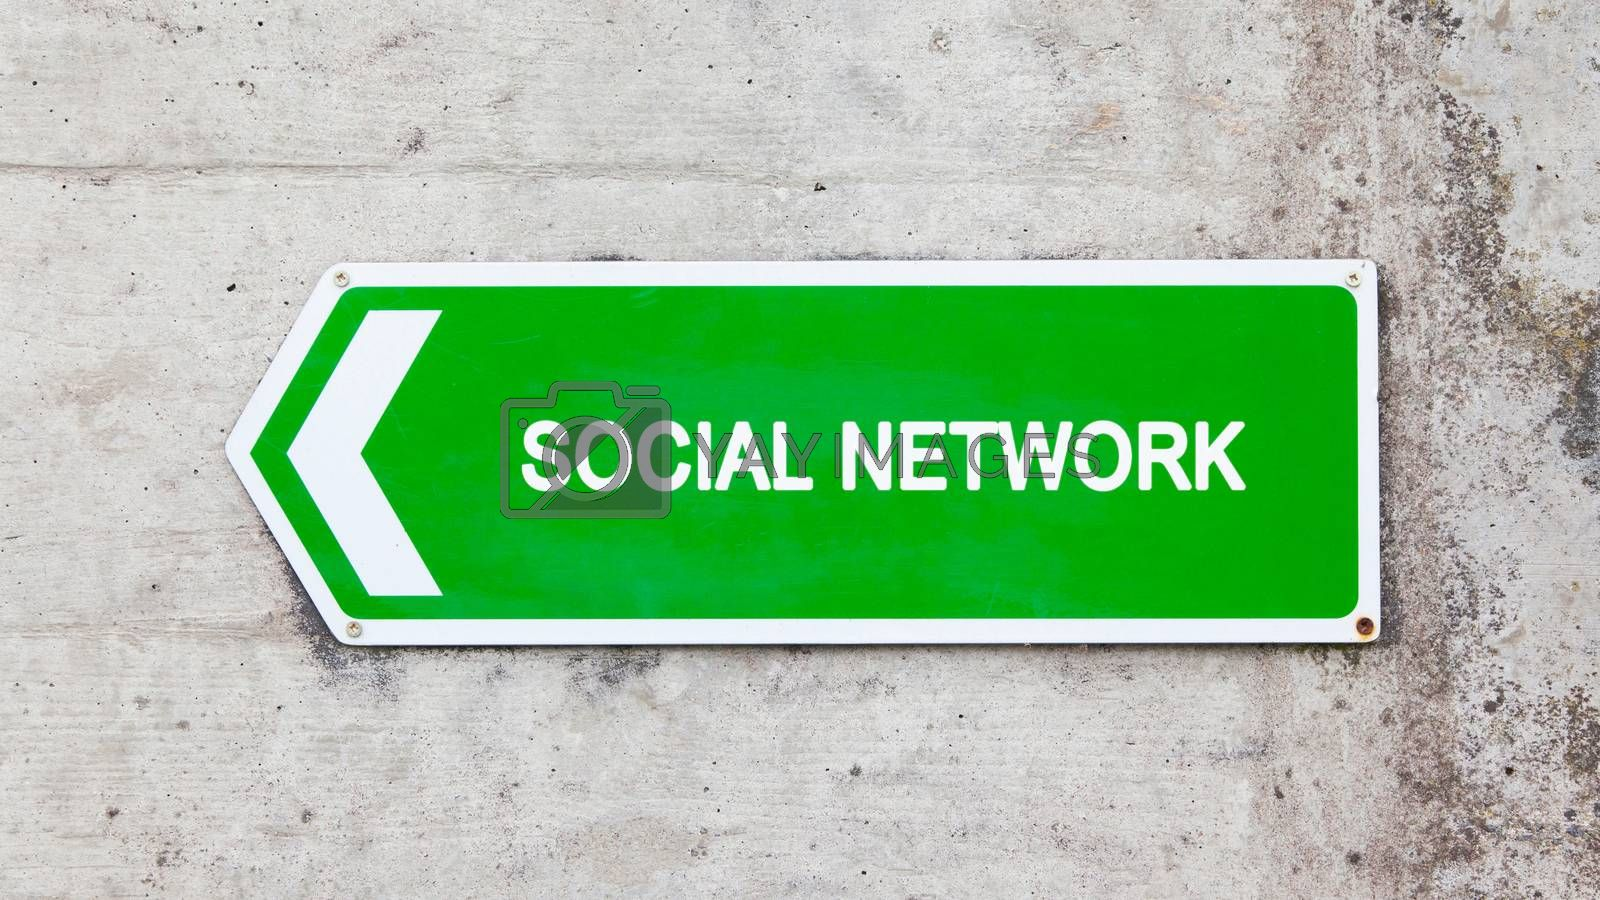 Royalty free image of Green sign - Social network by michaklootwijk